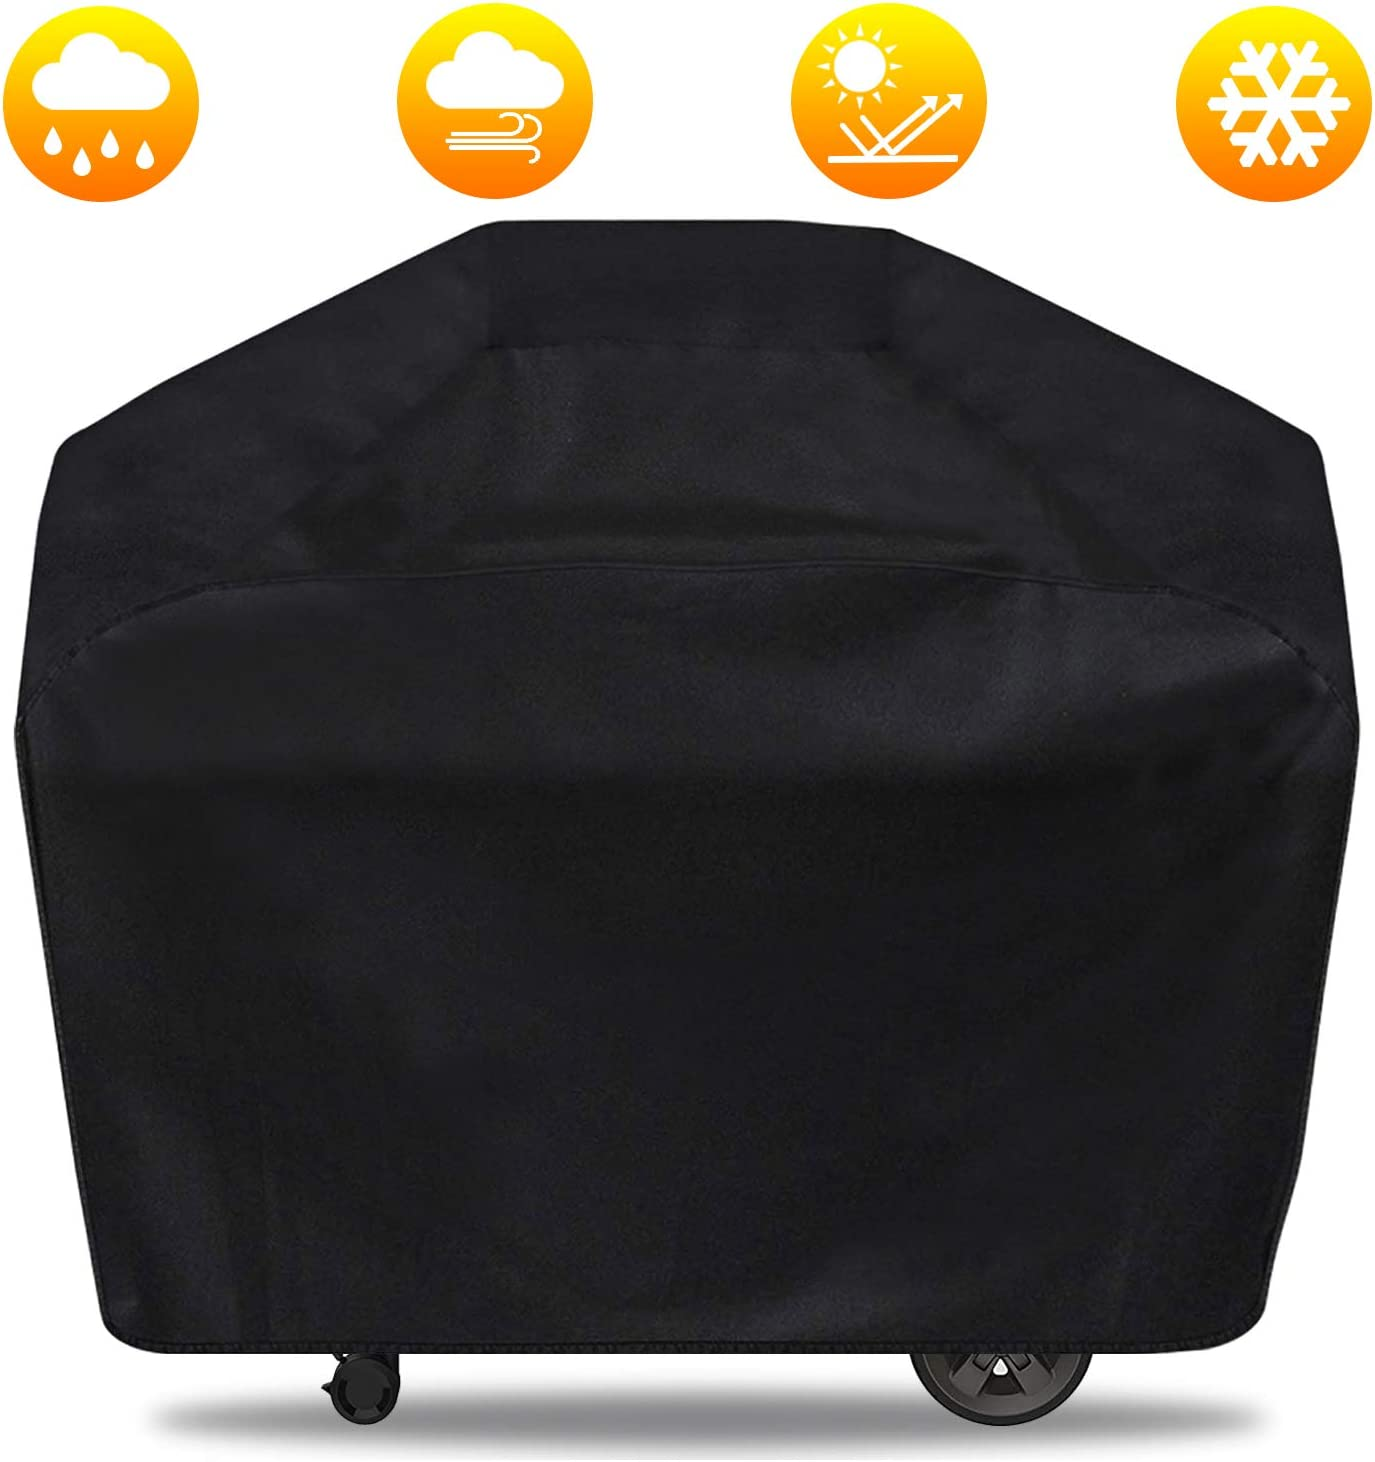 Kamado Joe UV /& Dust /& Weather Resistant Material 30 inch Waterproof BBQ Grill Cover 30 inch, Black Char-Griller Durable Gas Grill Cover fit for Big Green Egg Pit Boss Louisiana